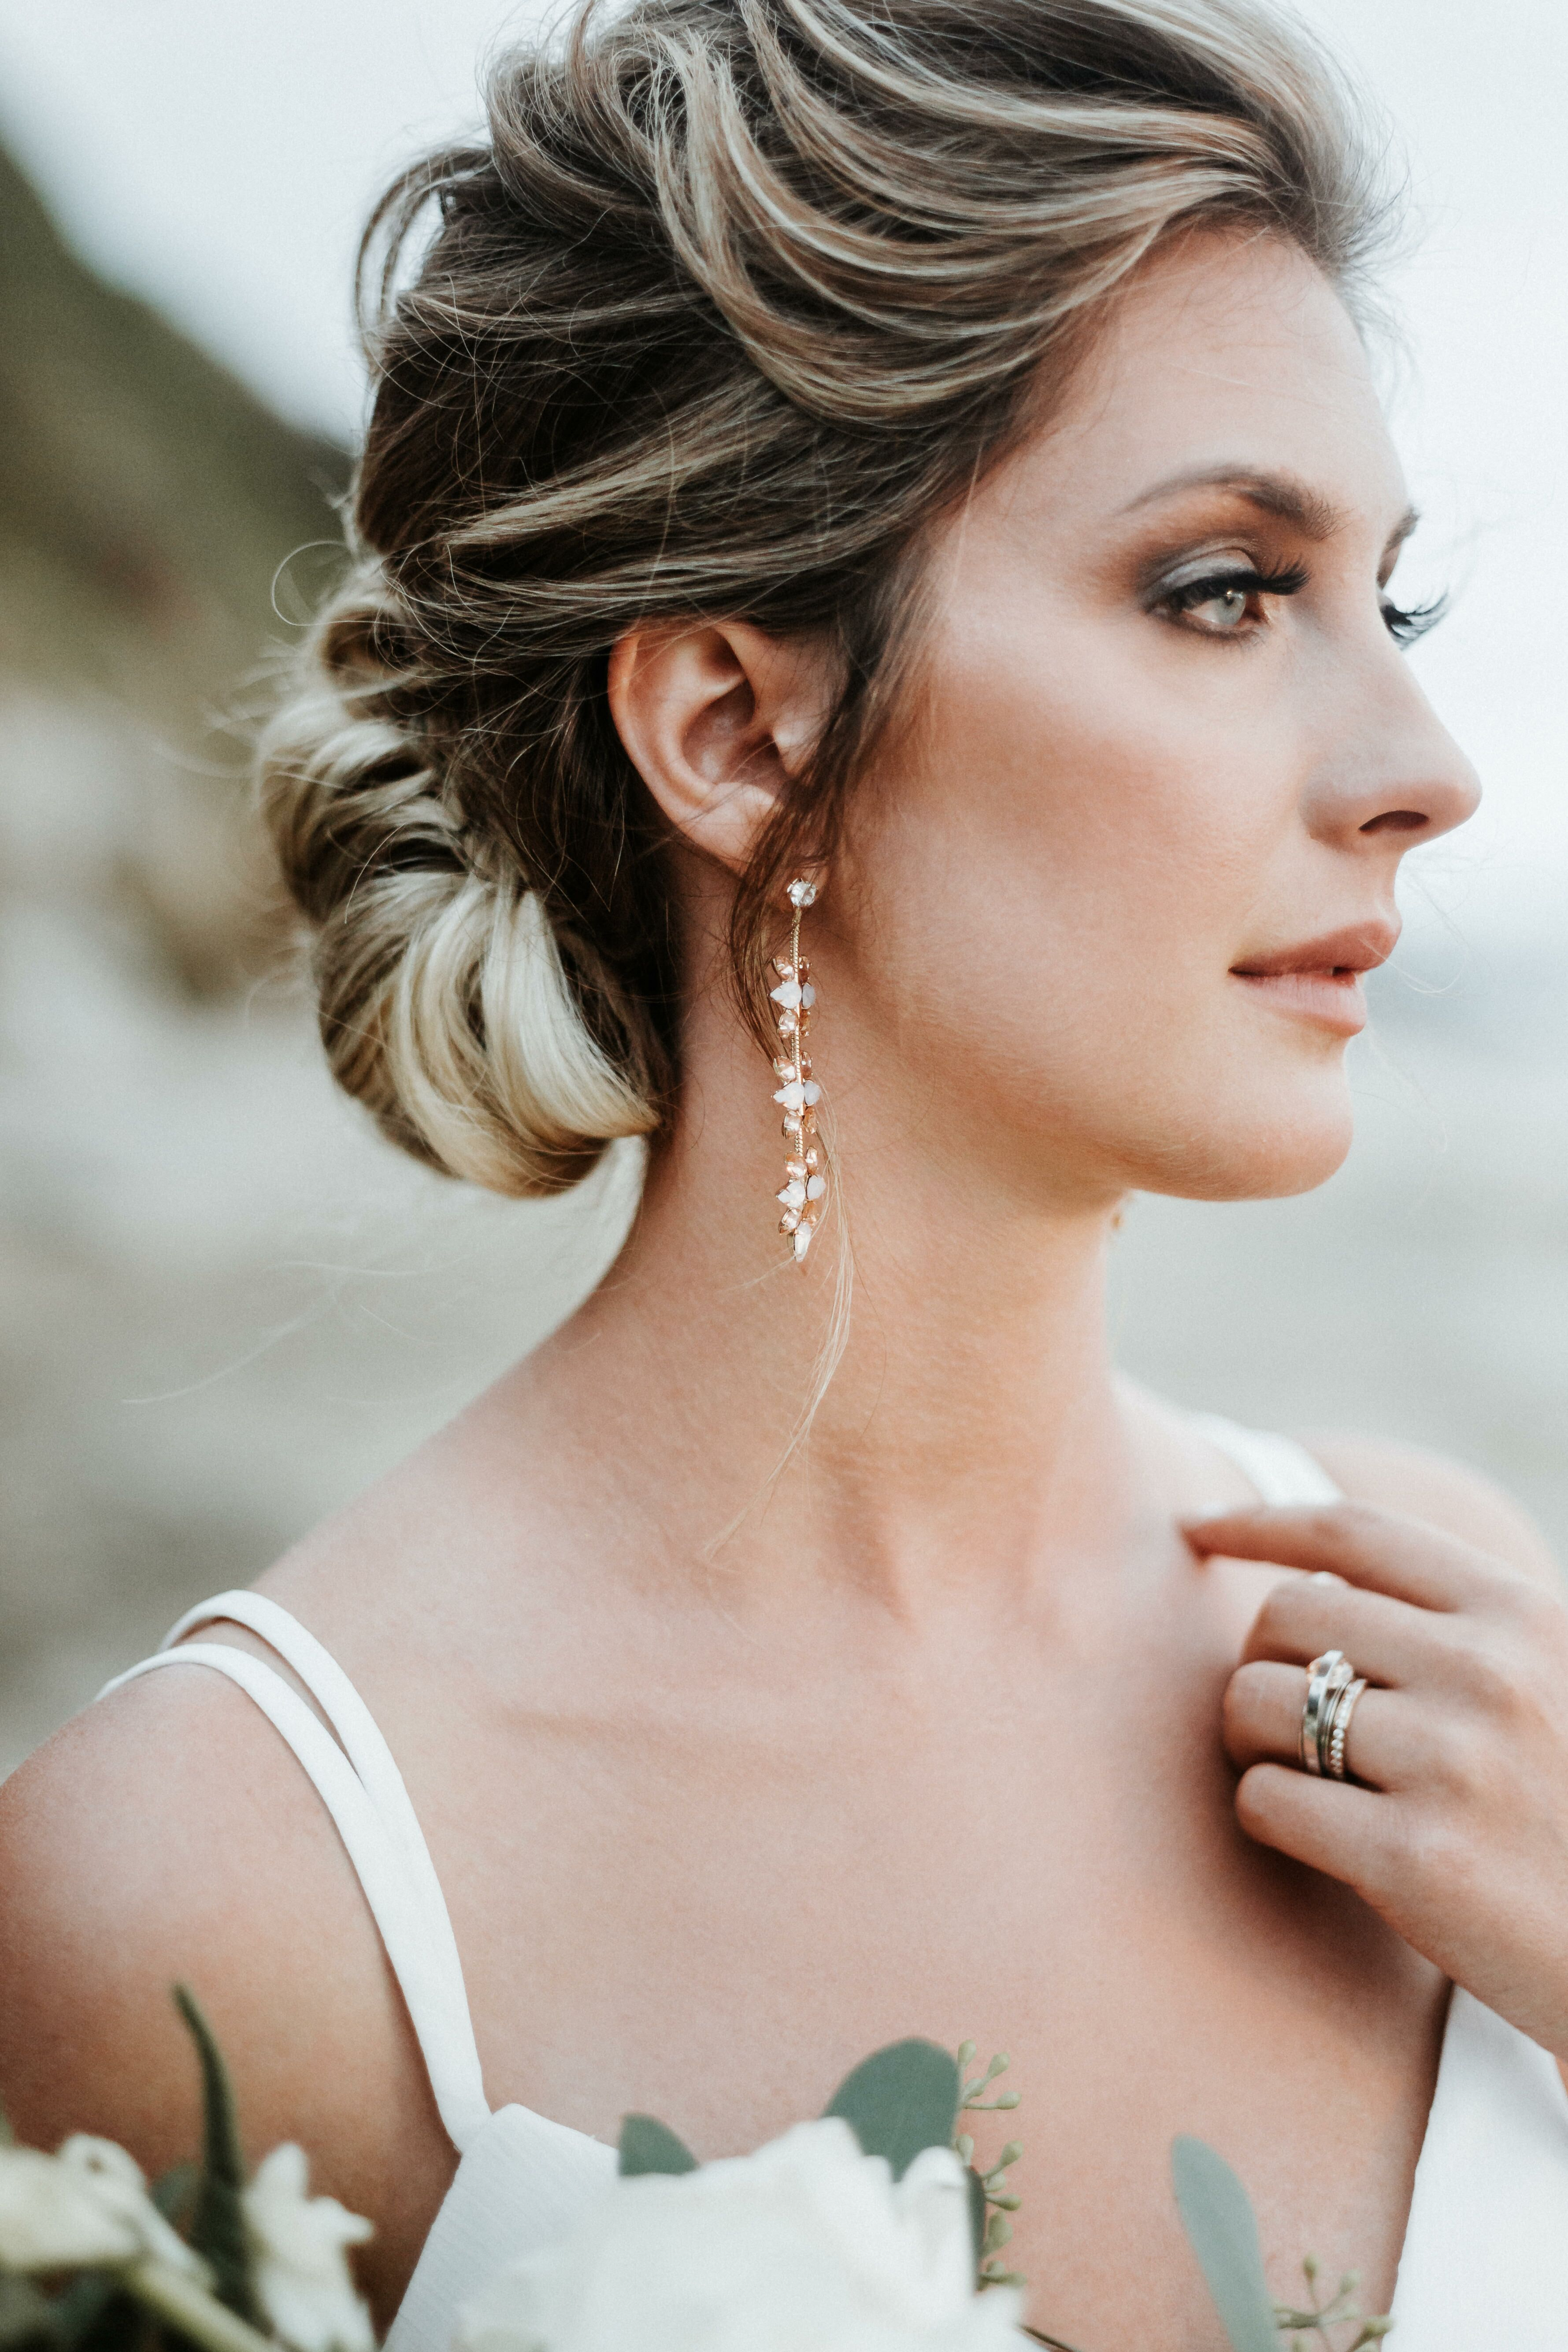 beauty salons in albuquerque, nm - the knot